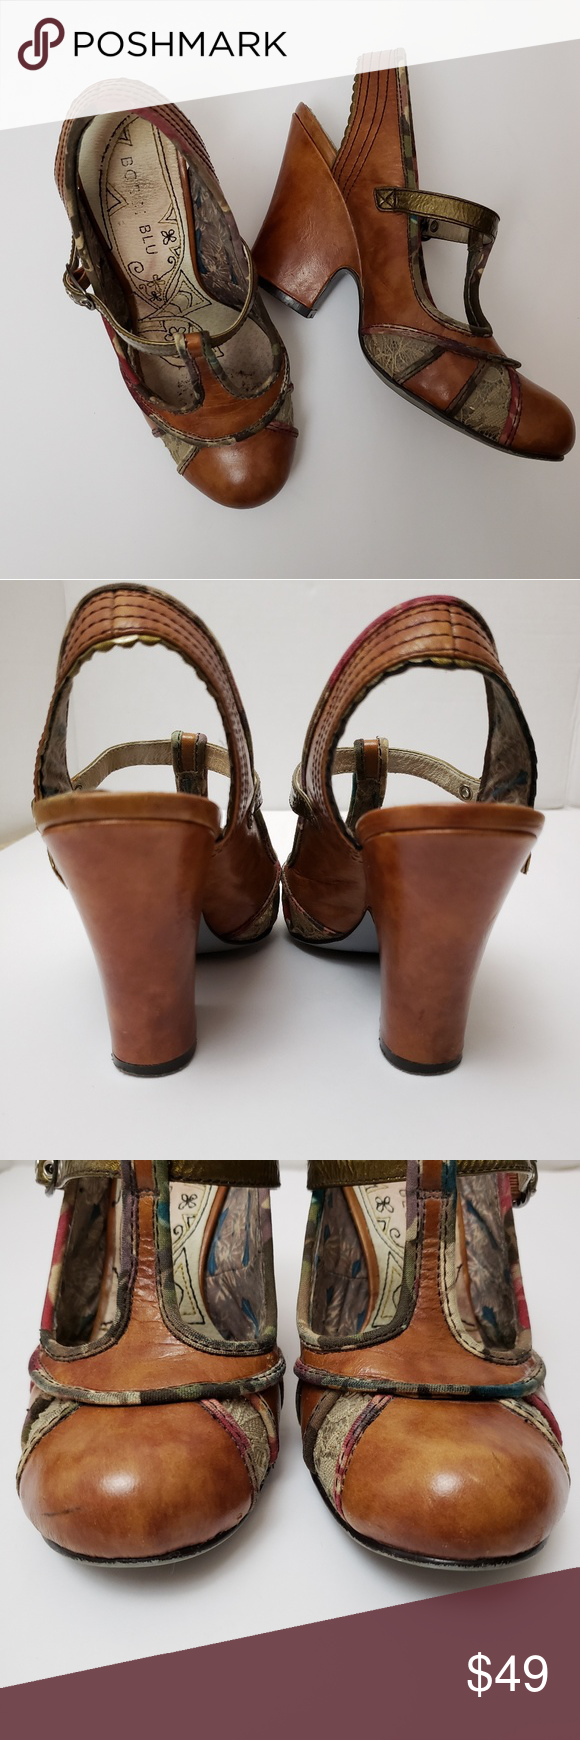 d028119cbf67 Rare Bobbi Blu Lola T Strap Slingback Wedges 5.5 Cute! Mixed media t strap  slingback wedge heels in cognac brown leather